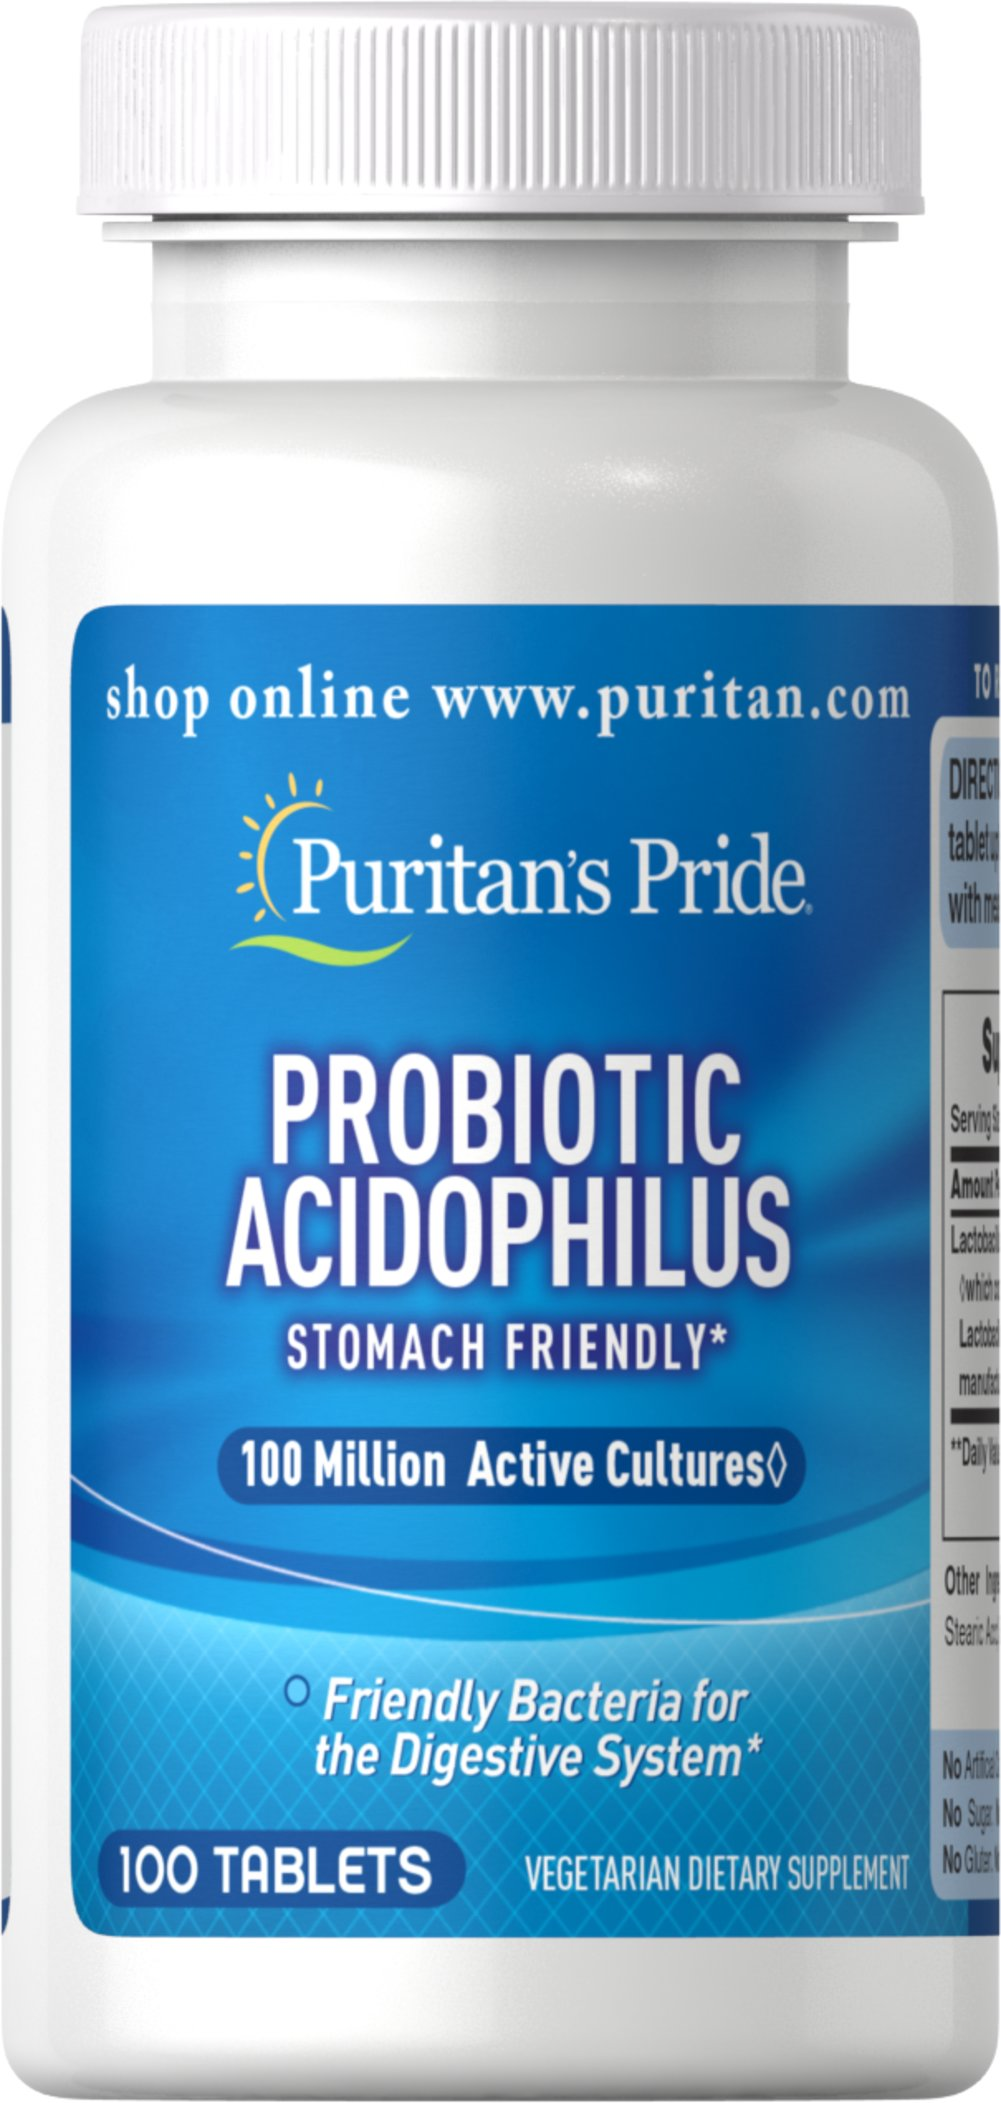 Probiotic Acidophilus <p>New small tablet</p><p>Stomach Friendly</p><p>Friendly bacteria for the Digestive System</p> 100 Tablets  $7.99